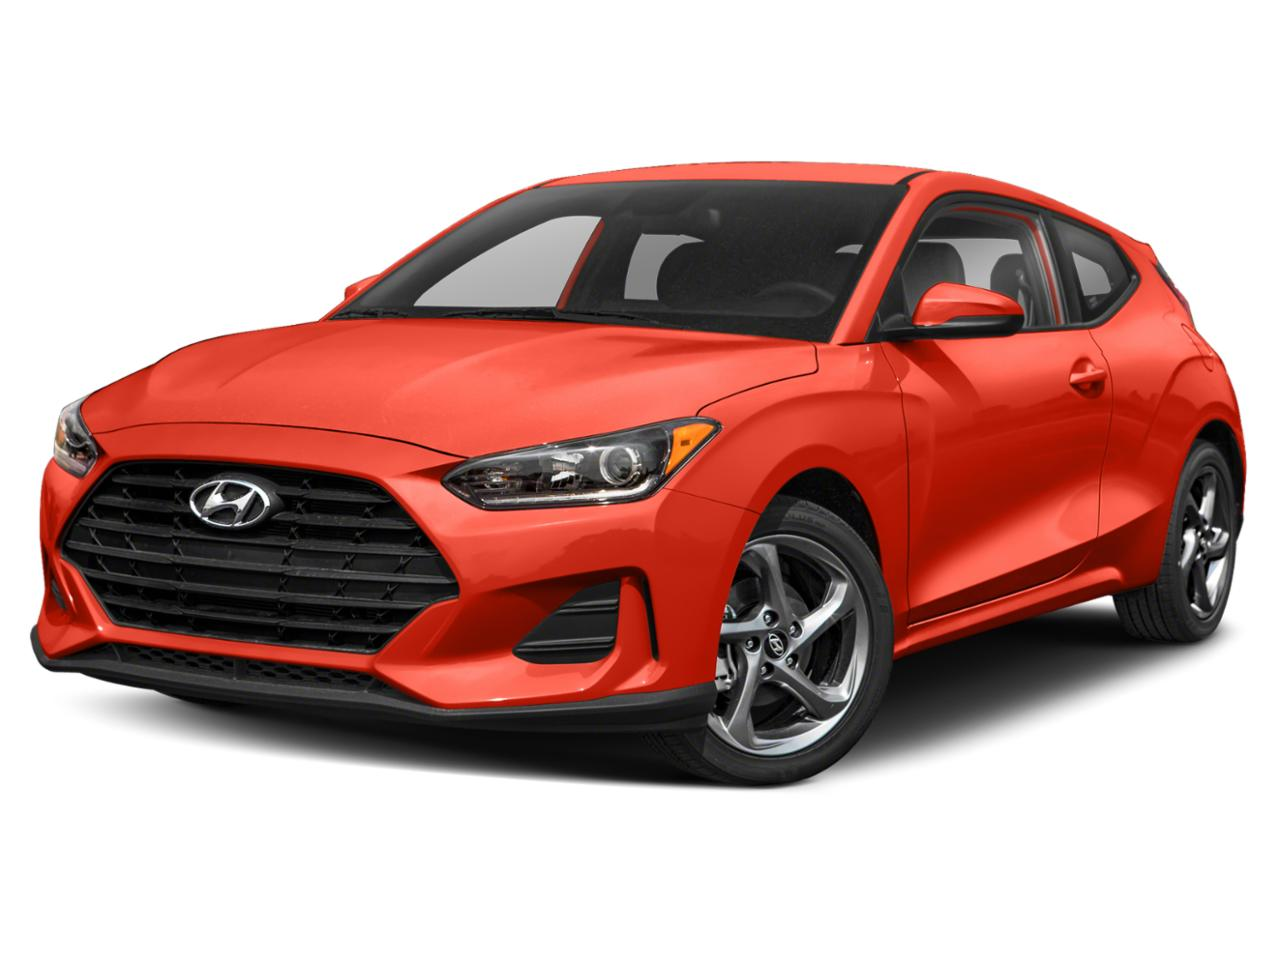 2019 Hyundai Veloster Vehicle Photo in Peoria, IL 61615